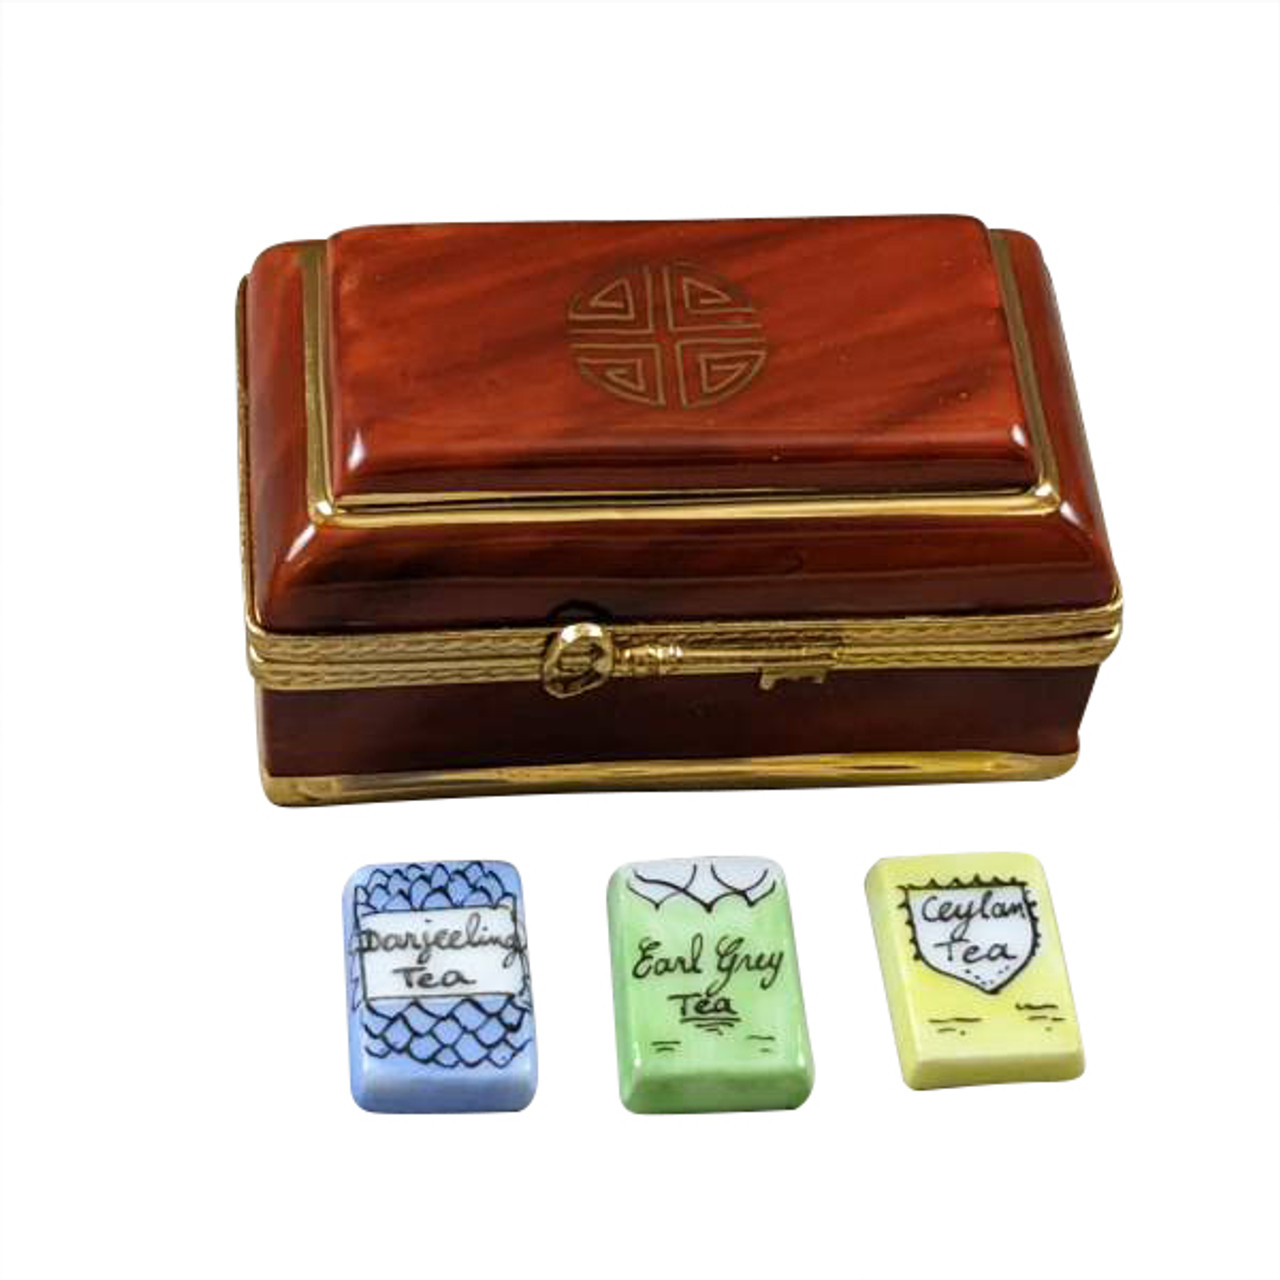 Tea Box Limoges Box with 3 Removable Tea Bags